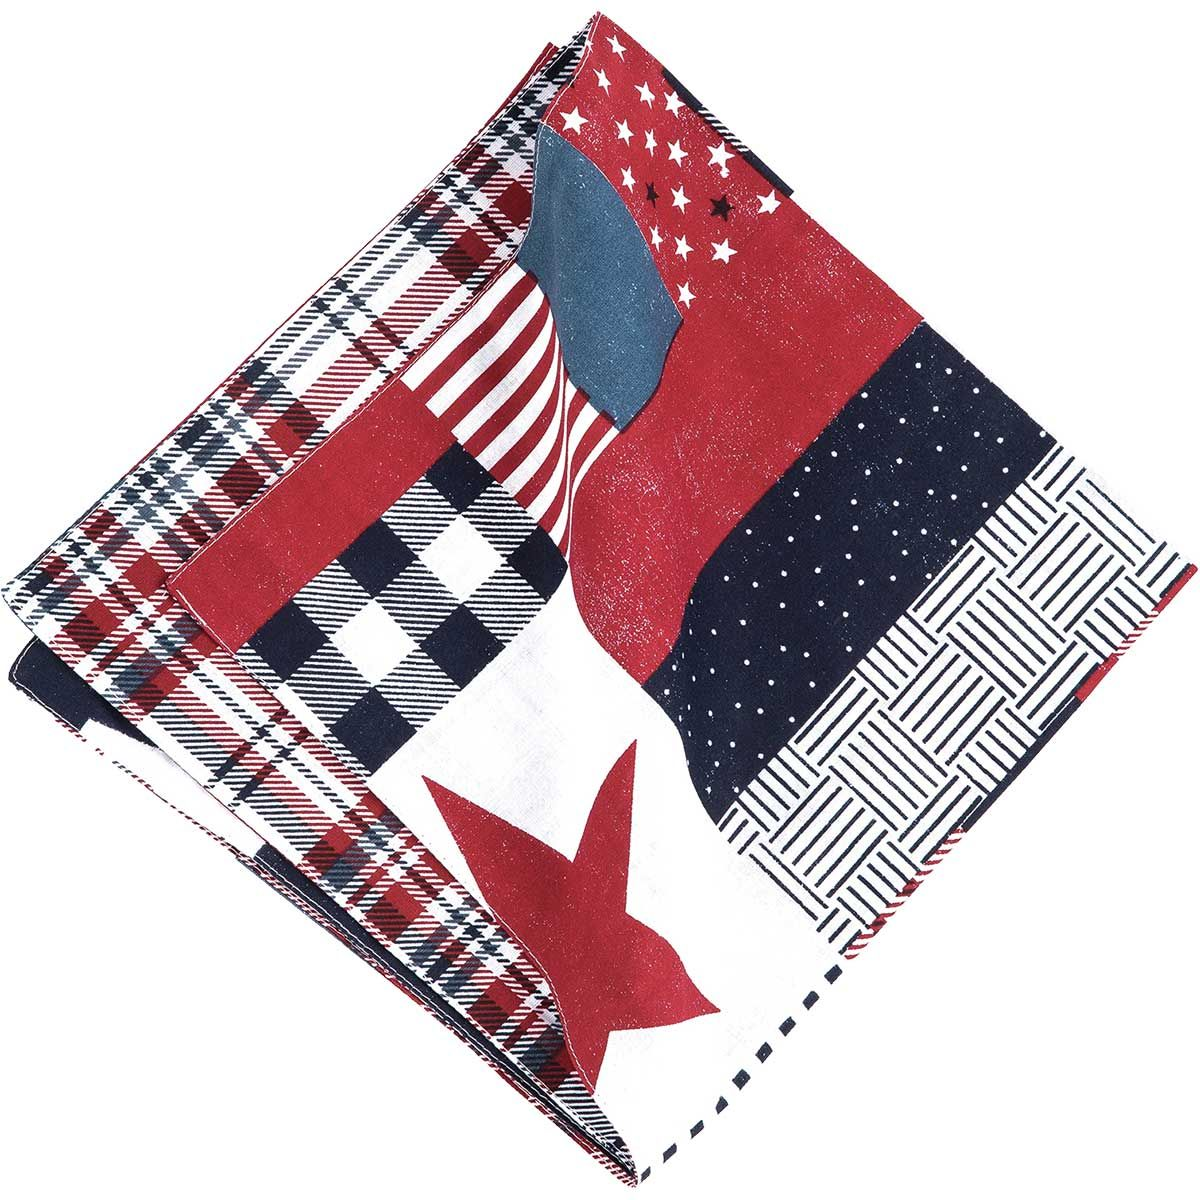 Country Picnic Reversible Napkins - Set of 6